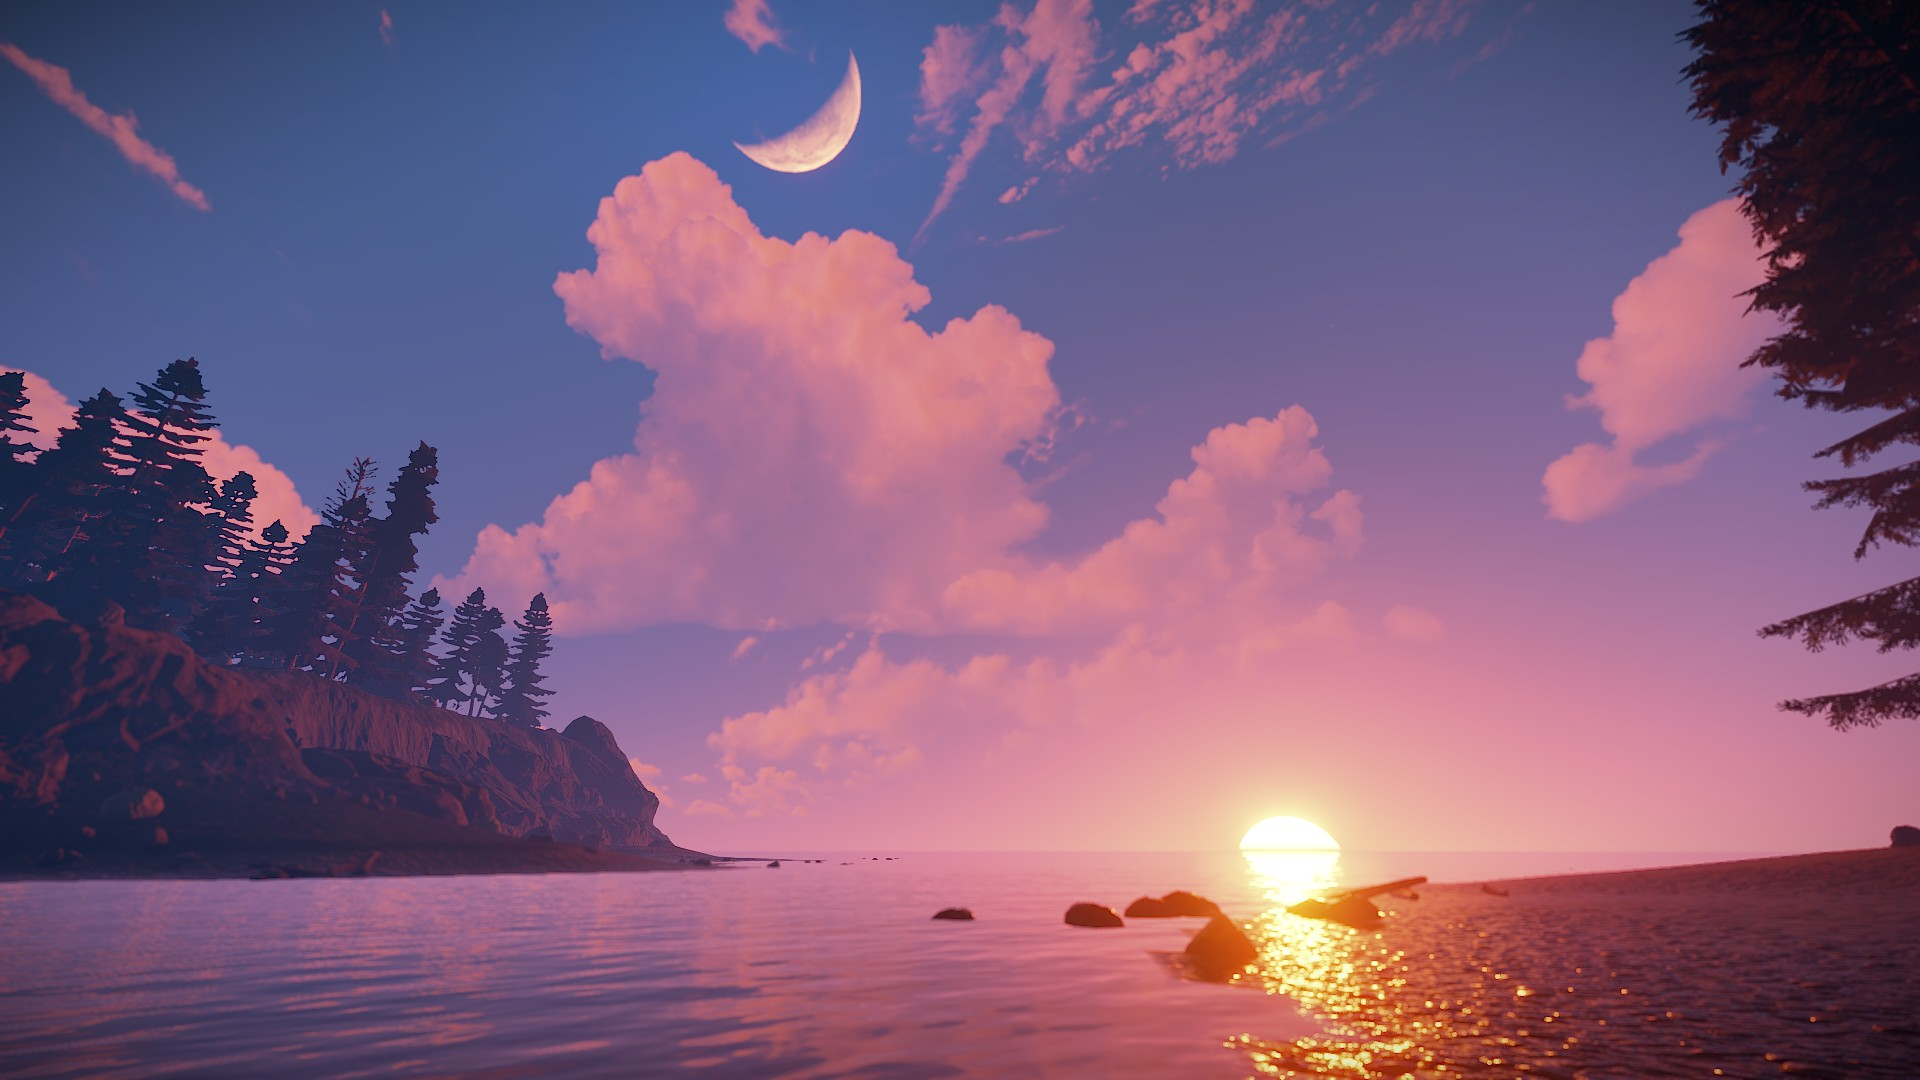 in-game screenshot of a sunset in Rust.